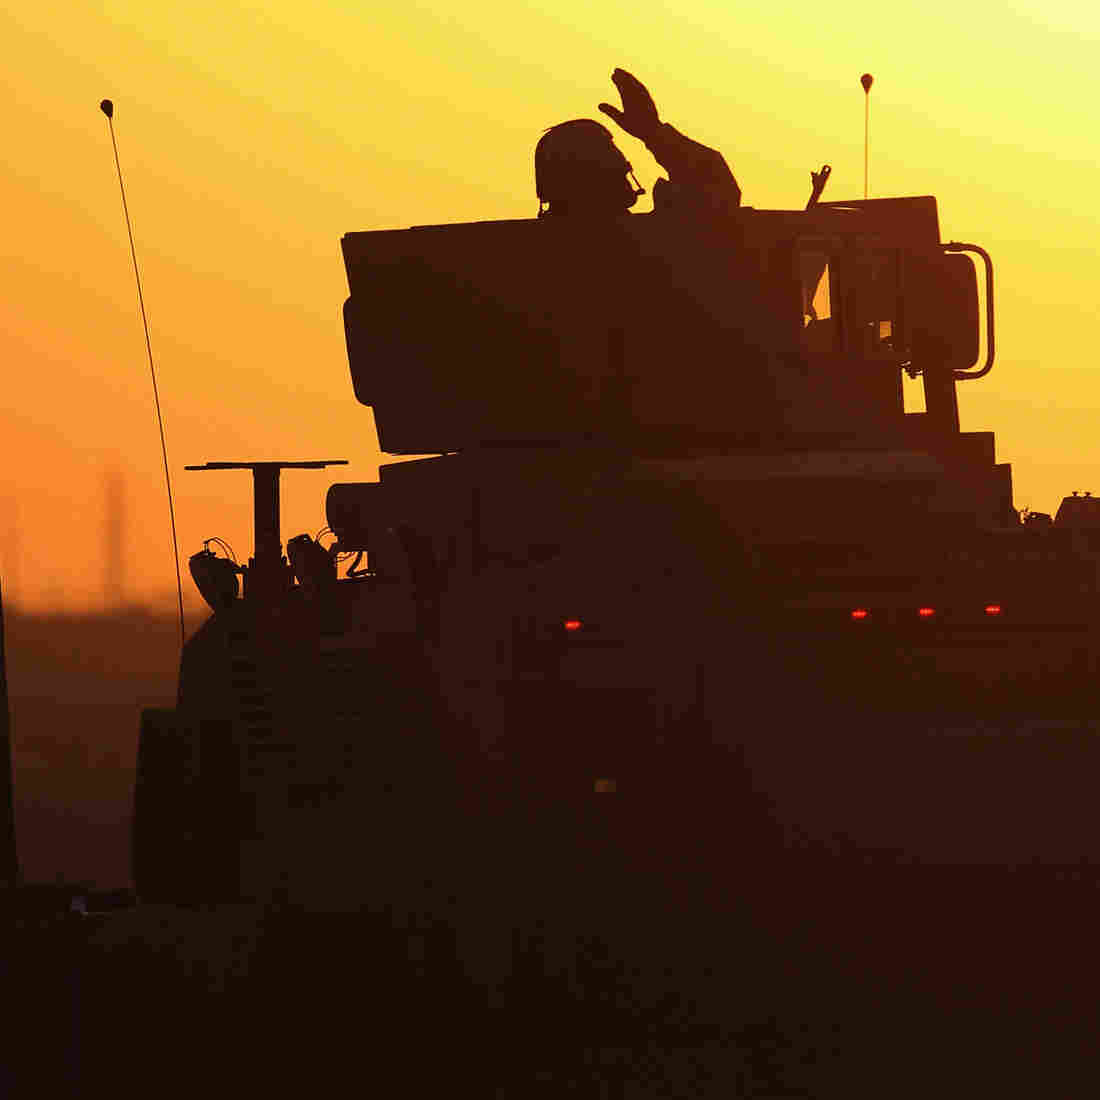 A soldier in the last American military convoy to depart Iraq, from the 3rd Brigade, 1st Cavalry Division, waves after crossing over the border into Kuwait on Dec. 18, 2011.